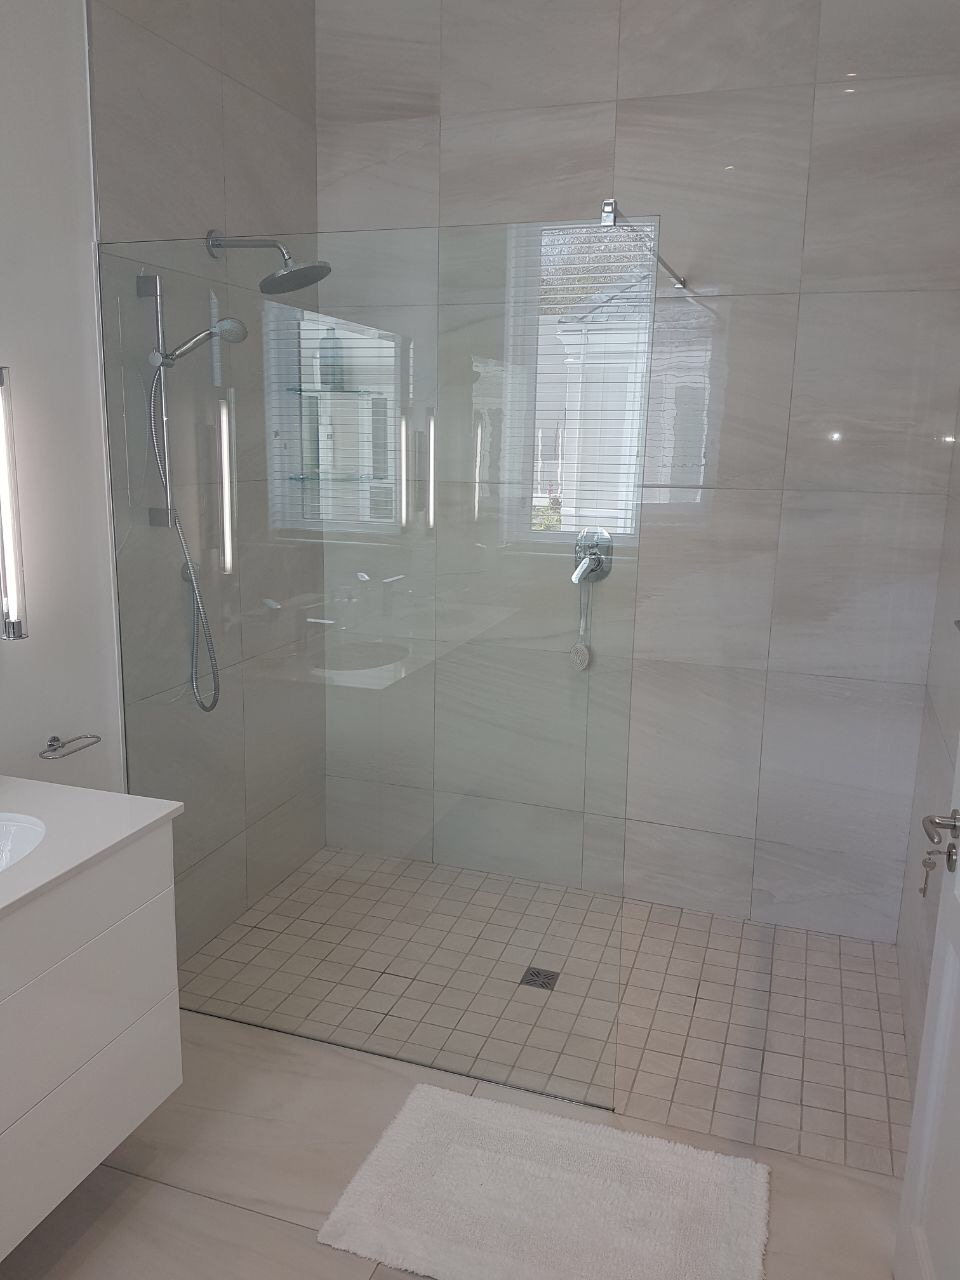 Pics Of Bathroom With Sliding Shower Doors With Black Trim